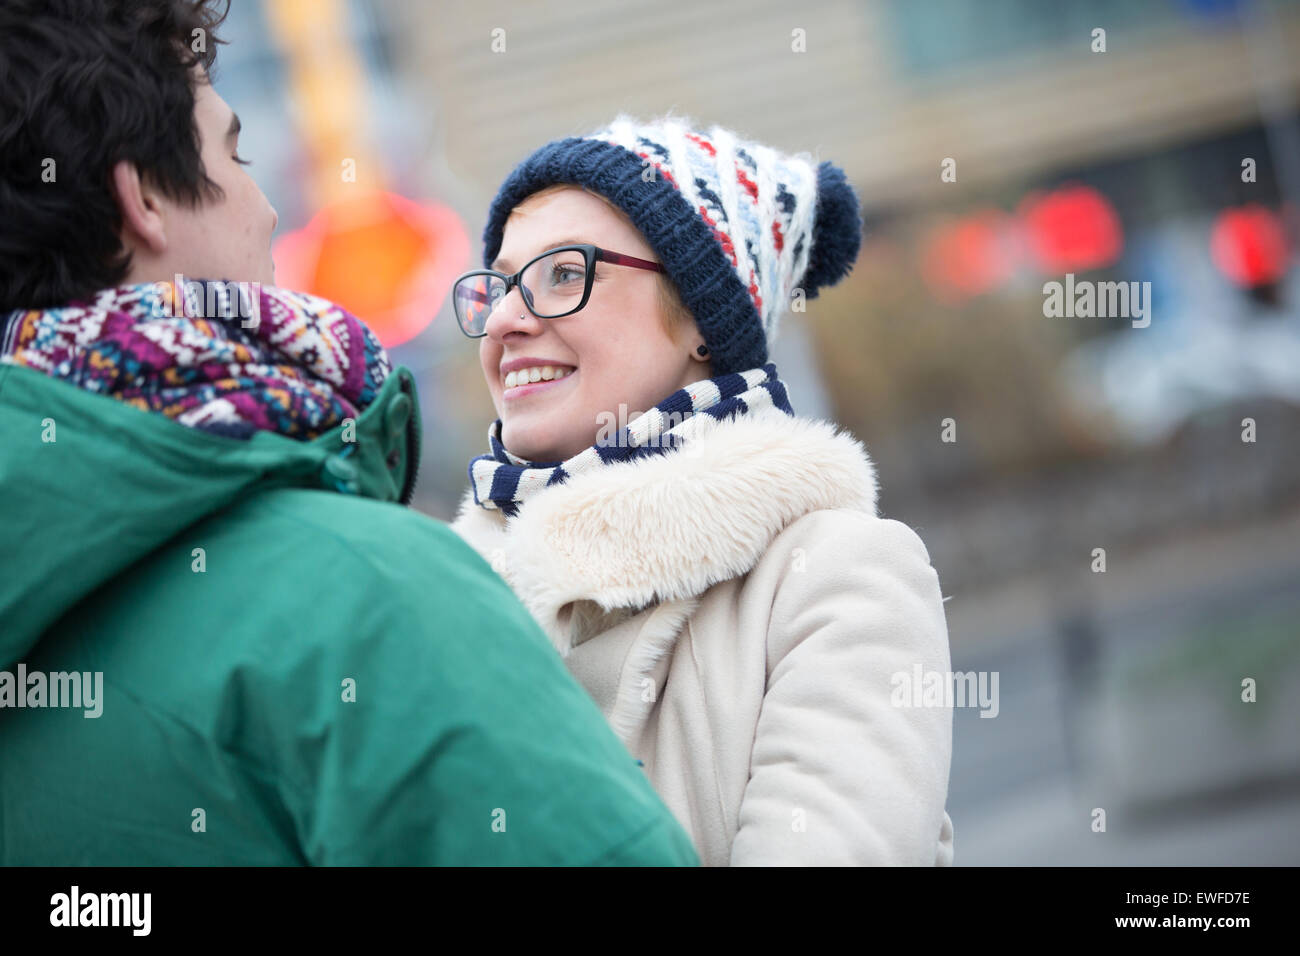 Romantic couple looking at each other in city during winter - Stock Image